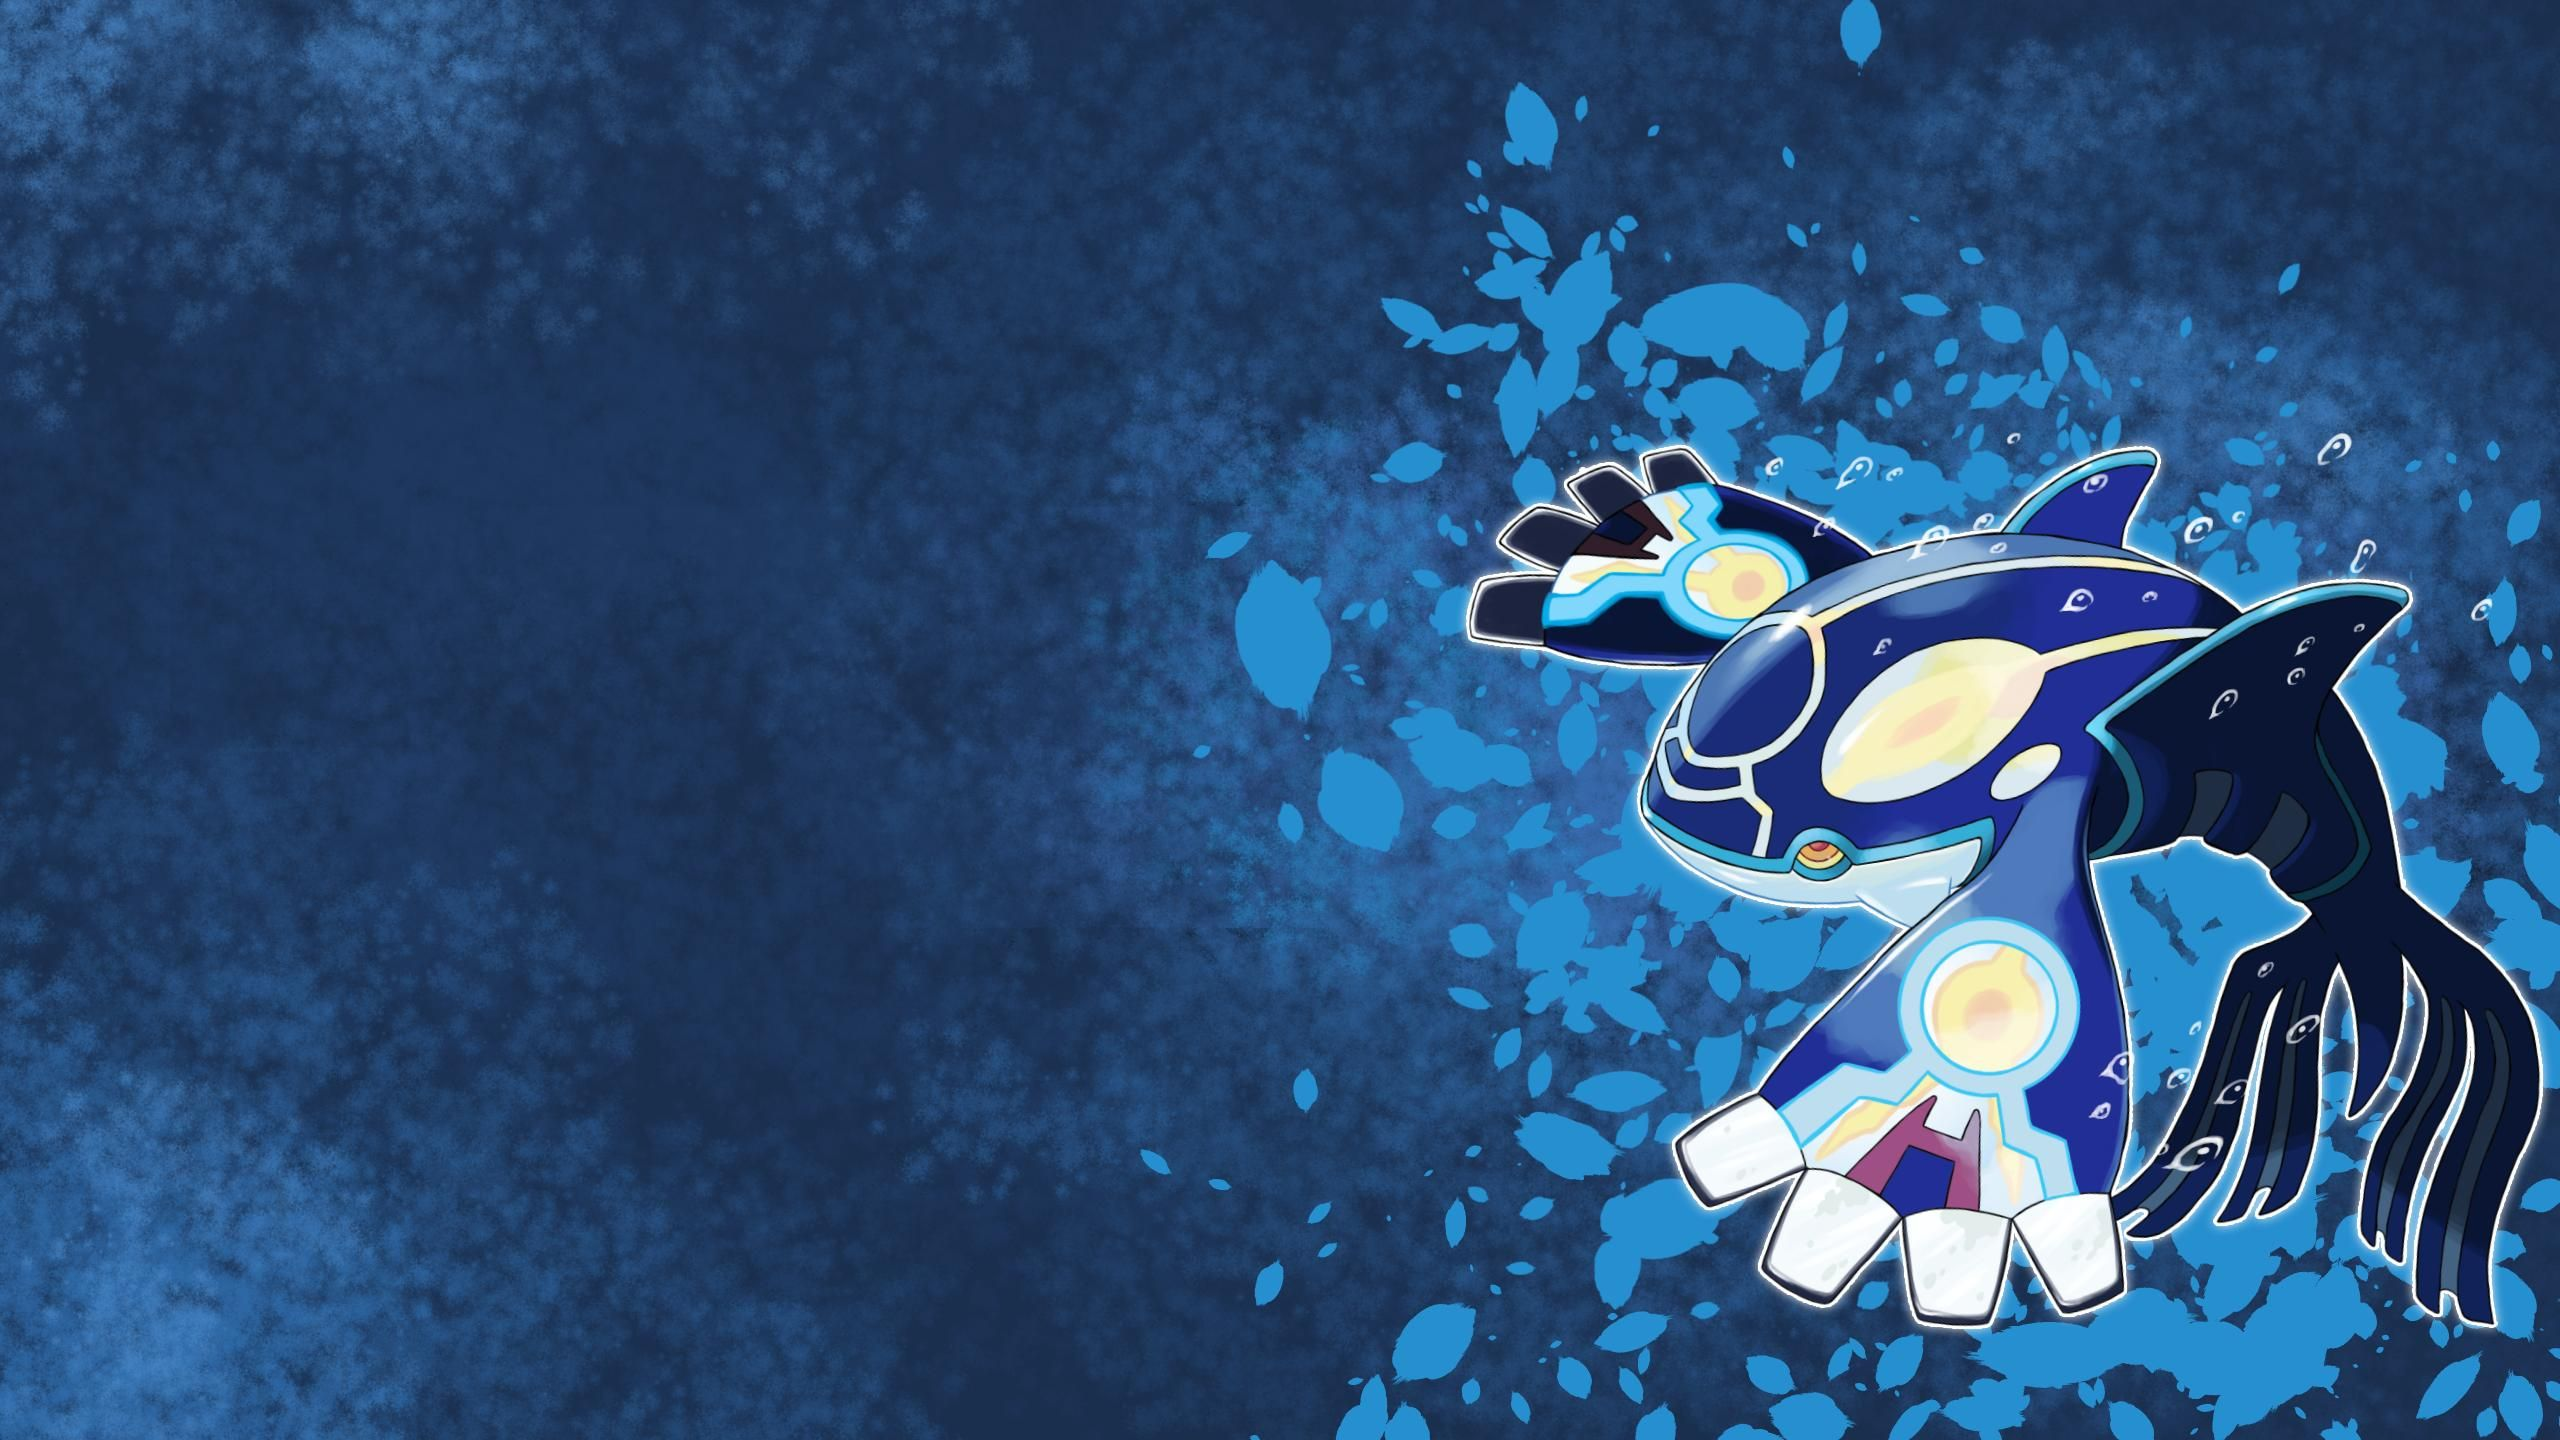 Kyogre Wallpapers Wallpaper Cave Rayquaza Wallpaper Art Wallpaper Gaming Wallpapers Hd